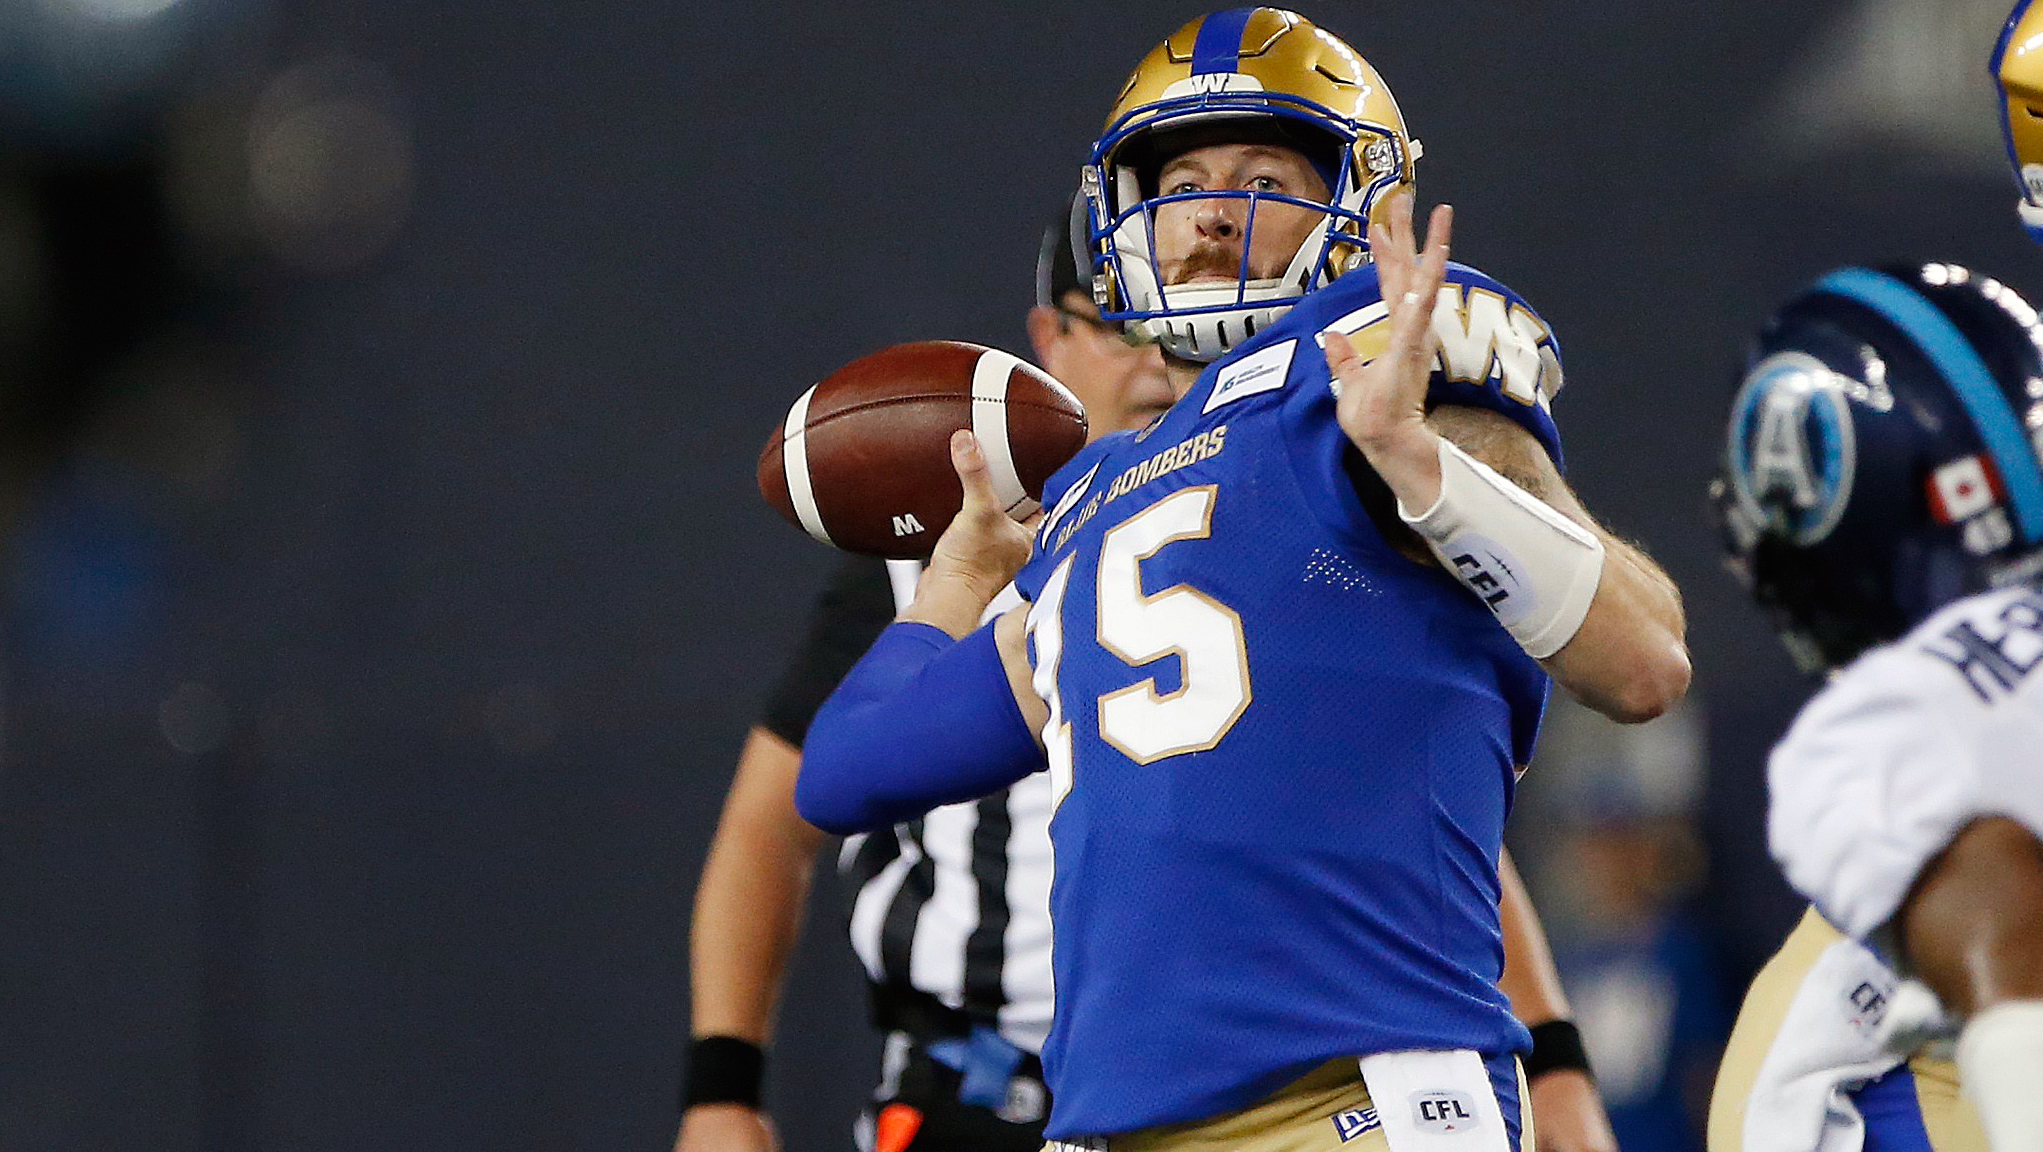 CFL.ca Game Notes: A look at Week 6 - CFL.ca